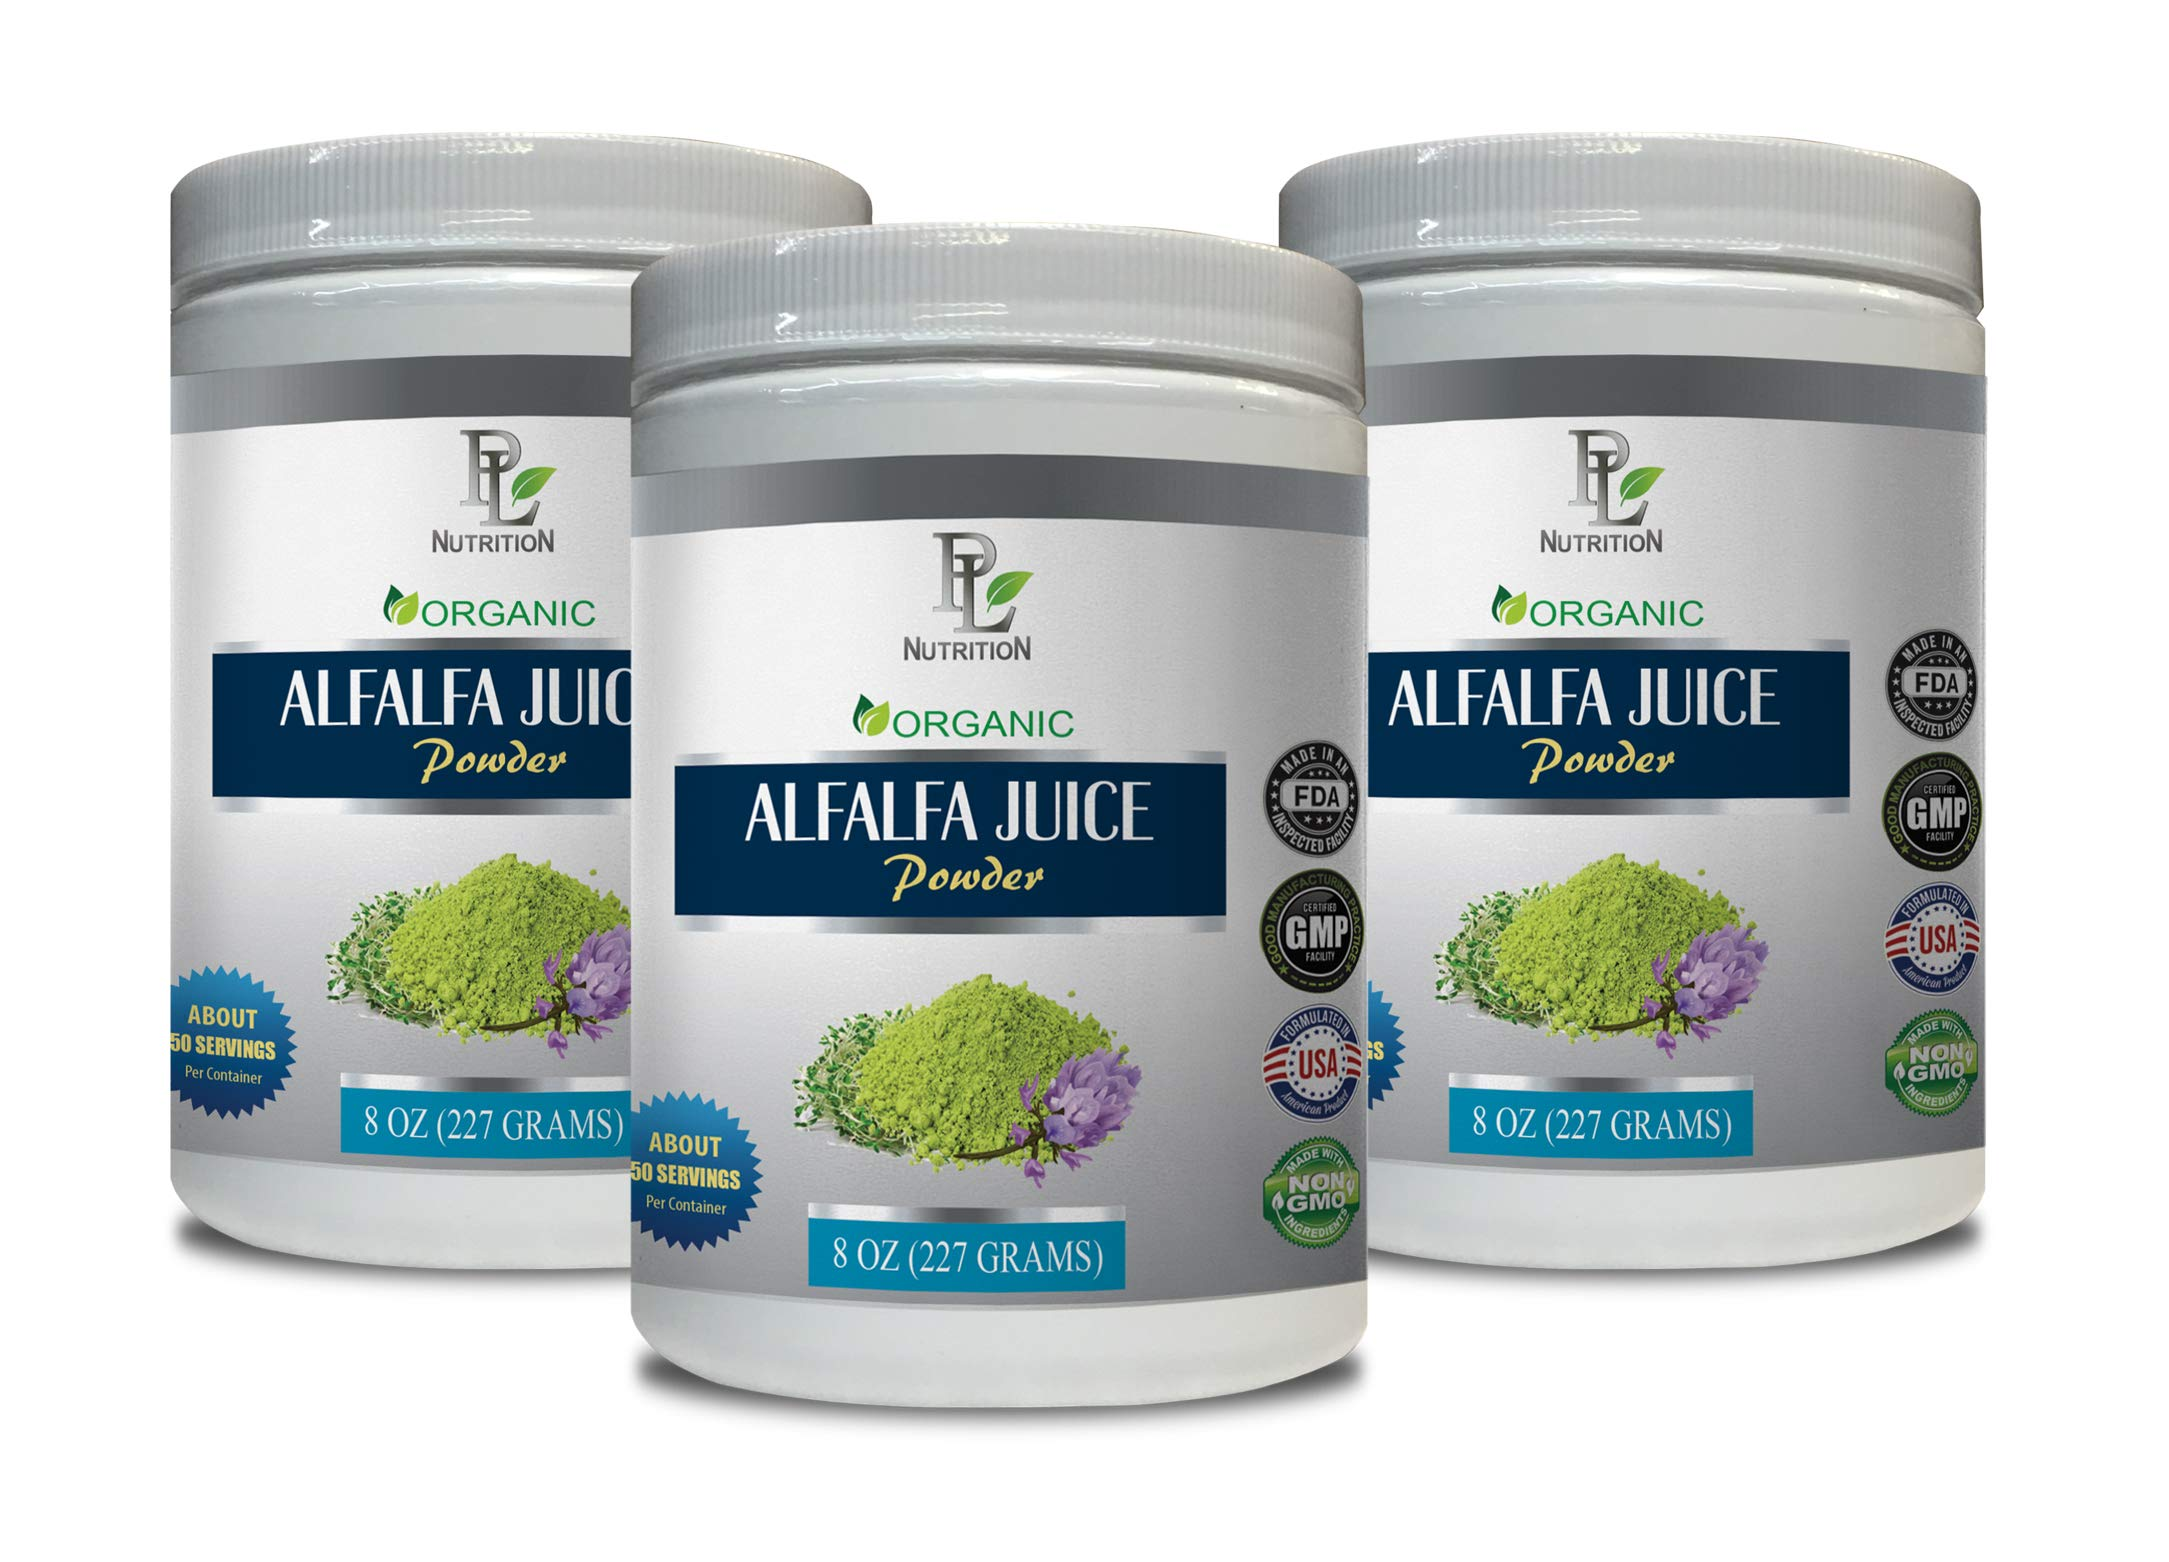 antioxidant Supplement for Men - Alfalfa Organic - Juice Powder - Powder Alfalfa - 3 Cans 24 OZ (150 Servings)